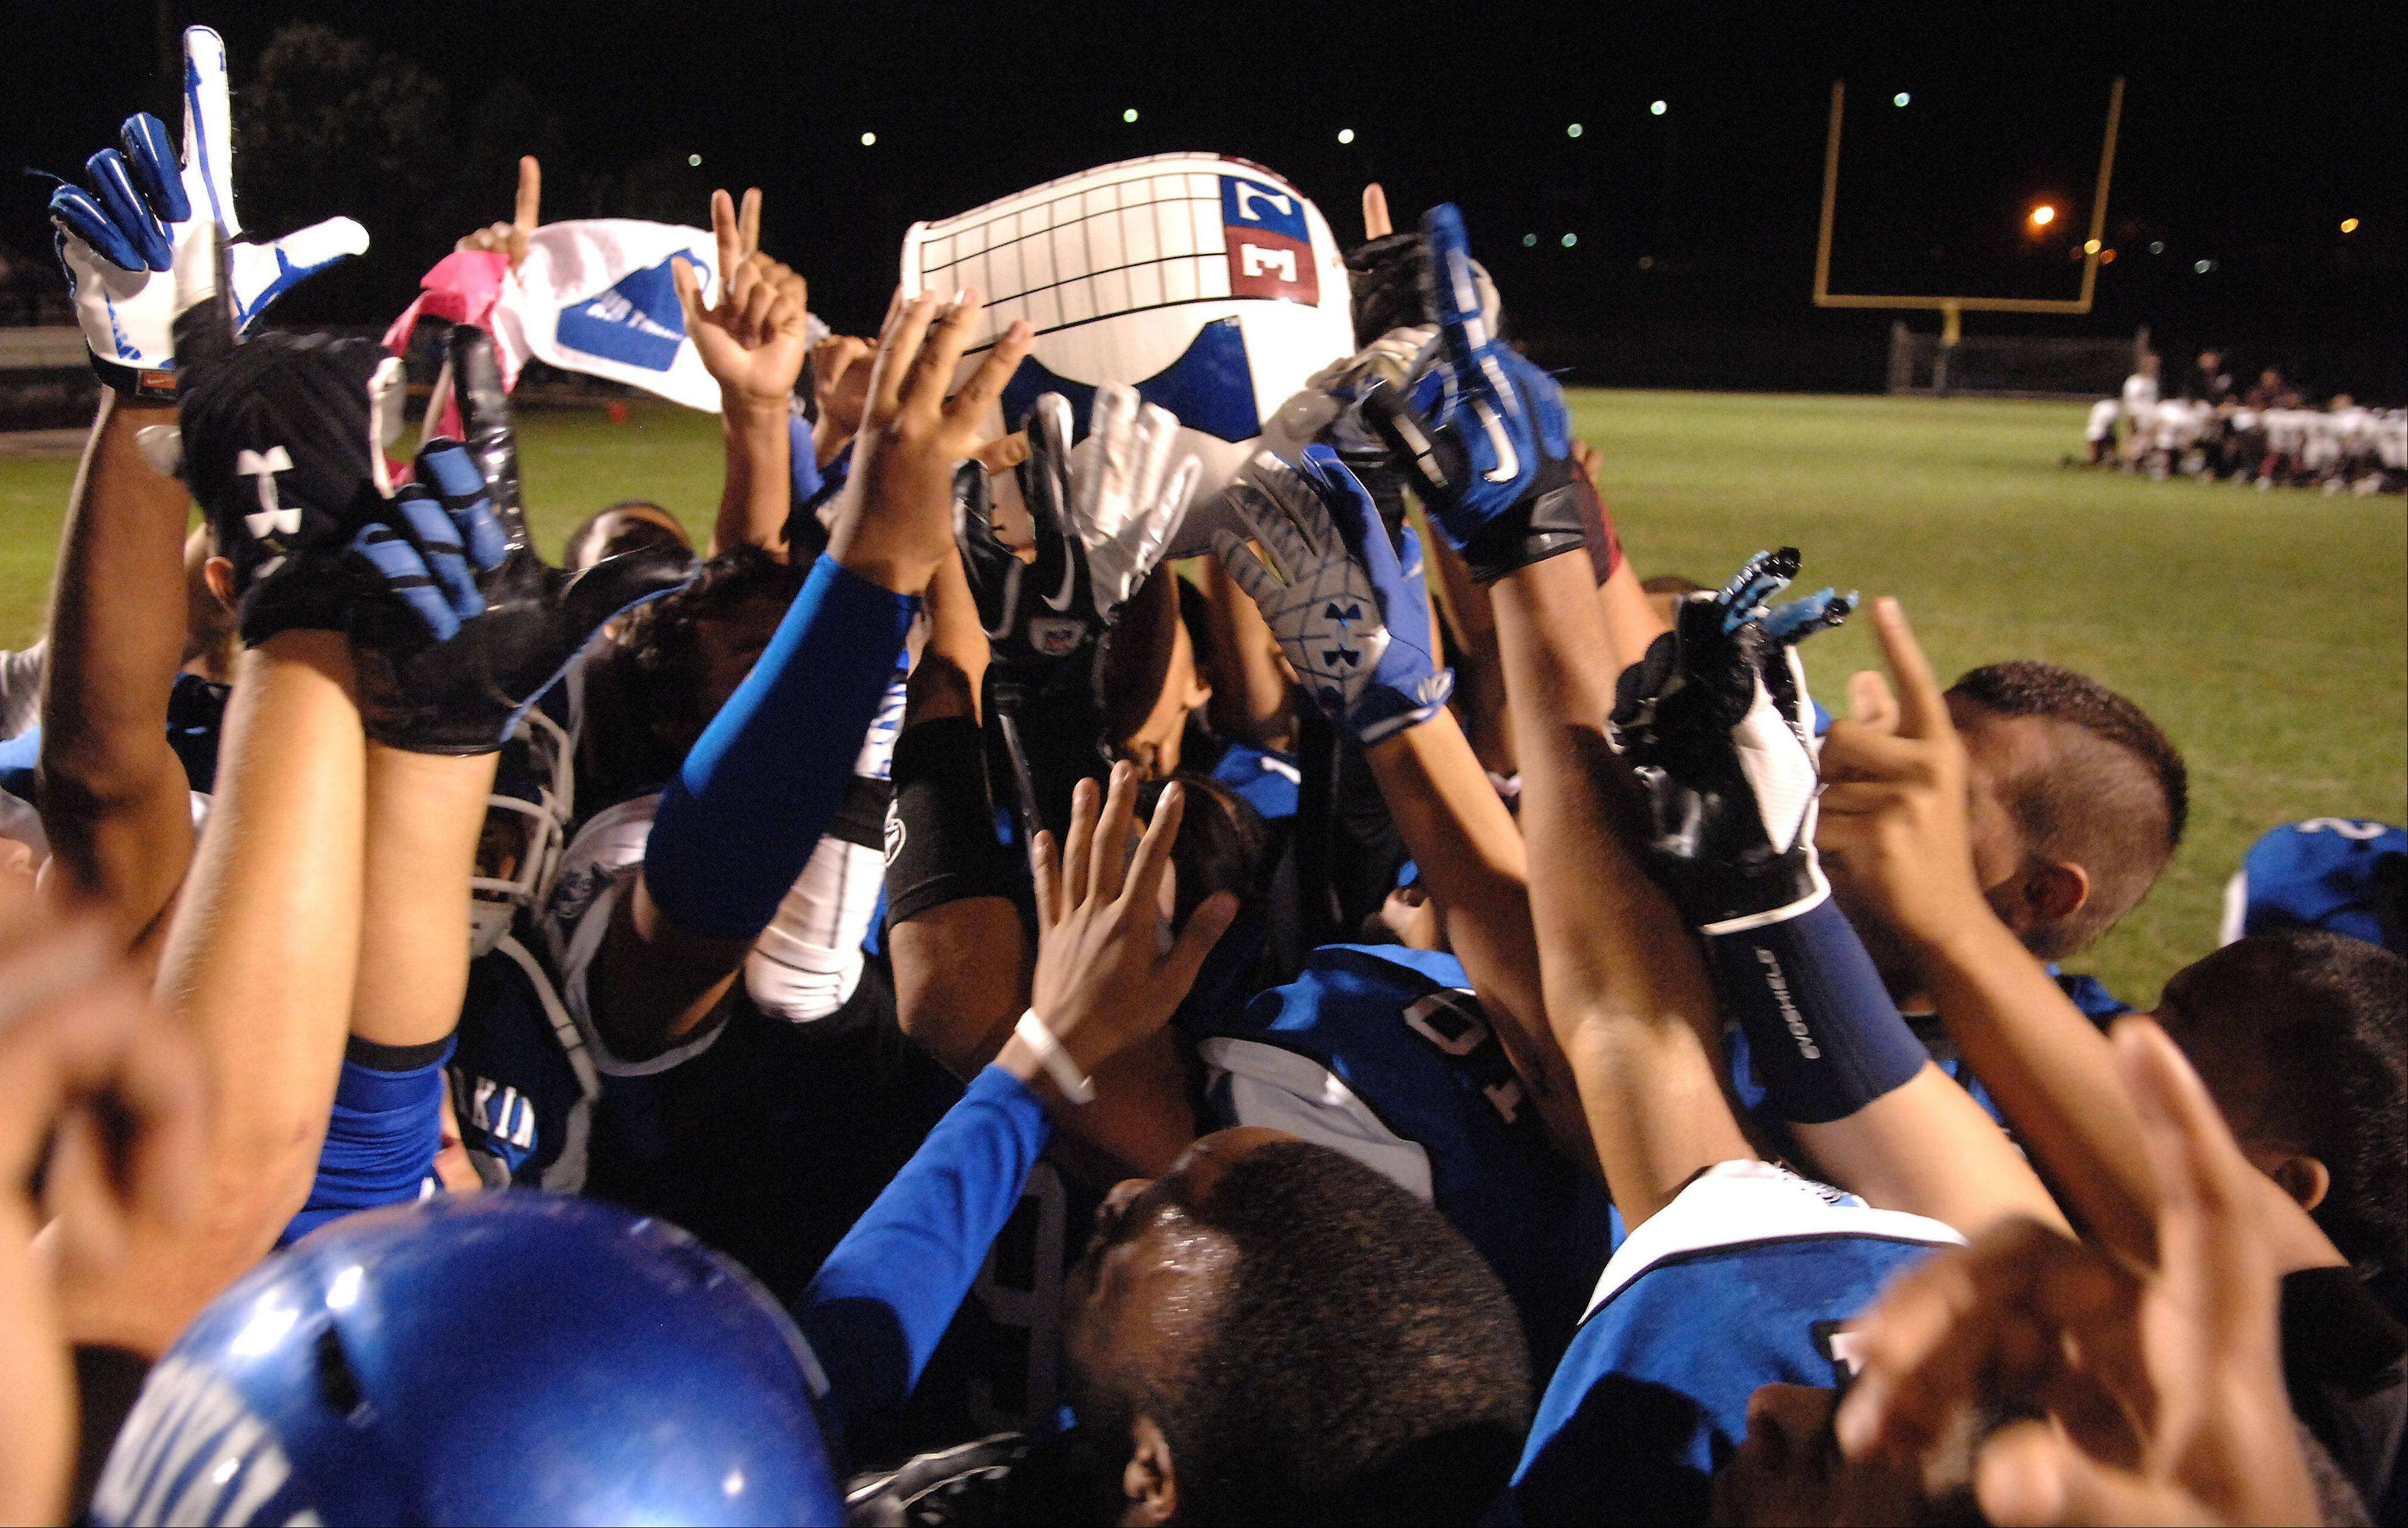 Larkin players celebrate with the jug following their win over Elgin during Friday's game at Elgin High School.